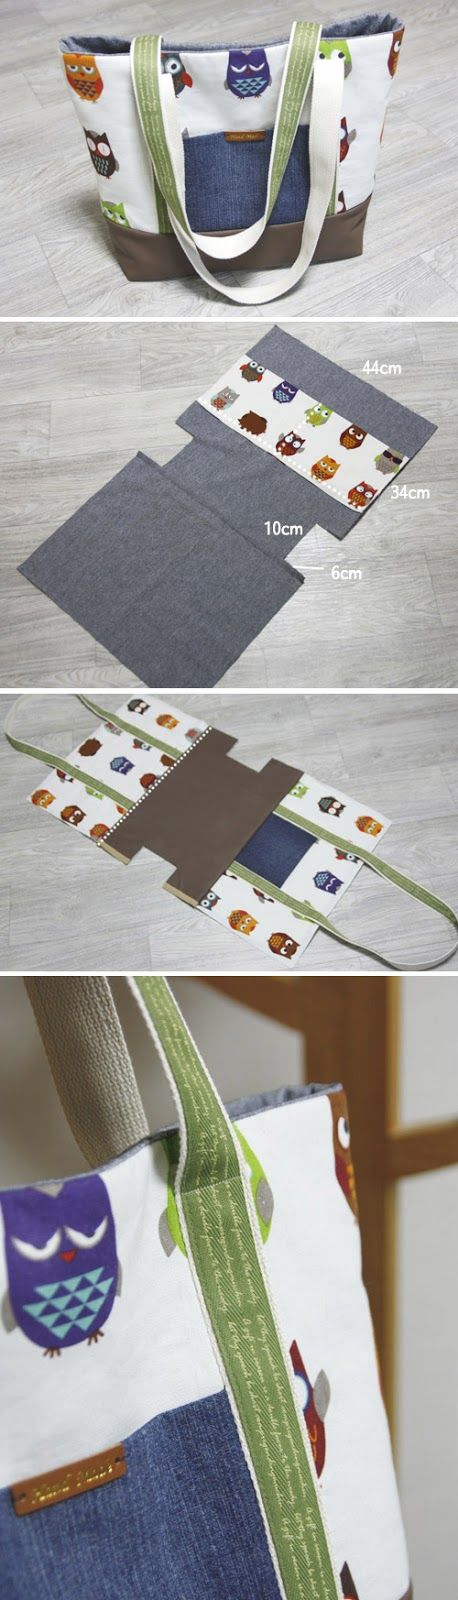 tuto tote bag basique http://www.handmadiya.com/2015/11/diy-canvas-tote-bag.html